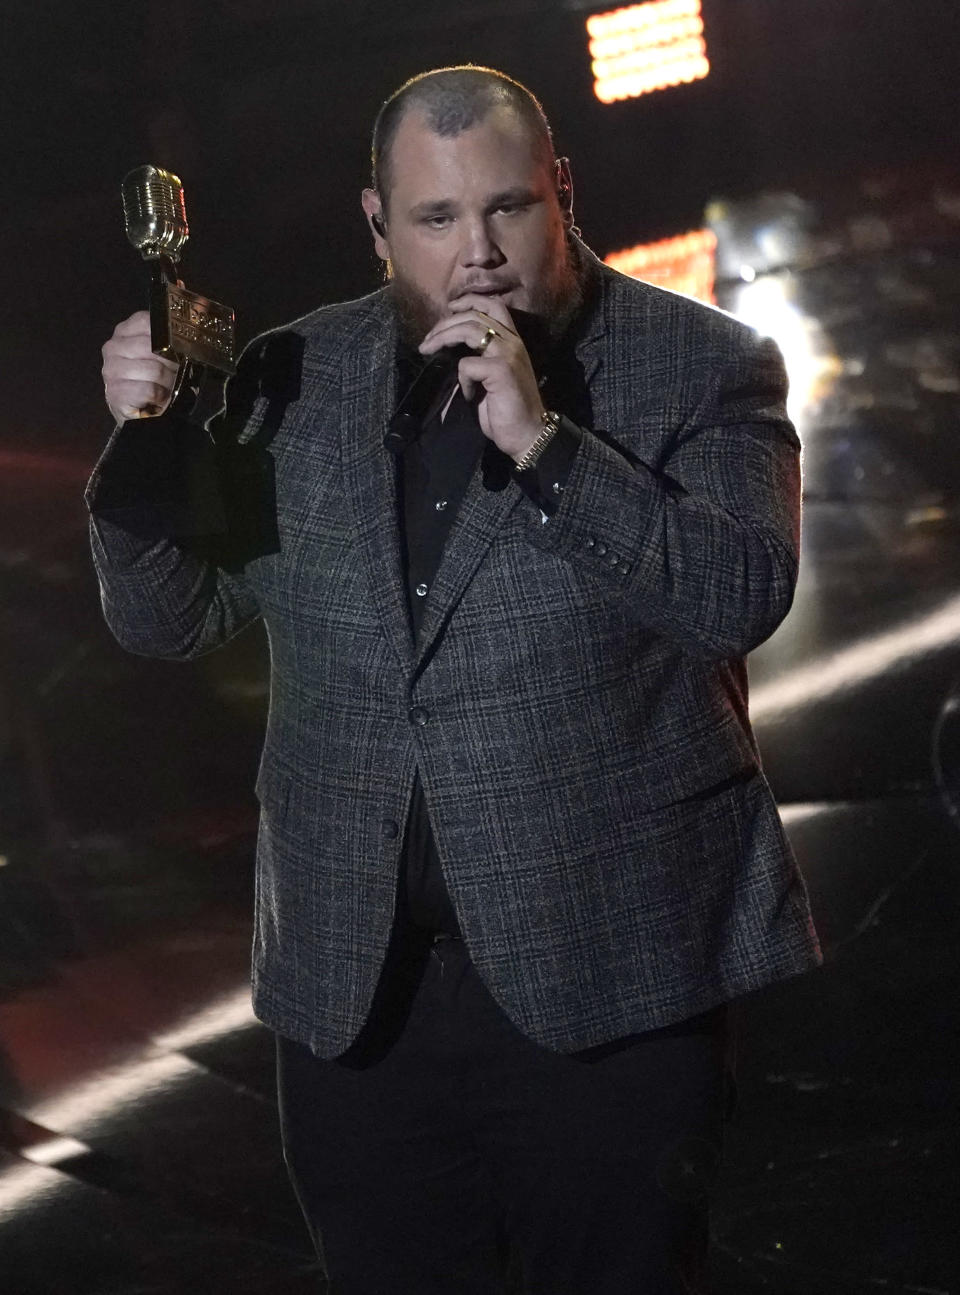 Luke Combs accepts the award for top country artist at the Billboard Music Awards on Wednesday, Oct. 14, 2020, at the Dolby Theatre in Los Angeles. (AP Photo/Chris Pizzello)